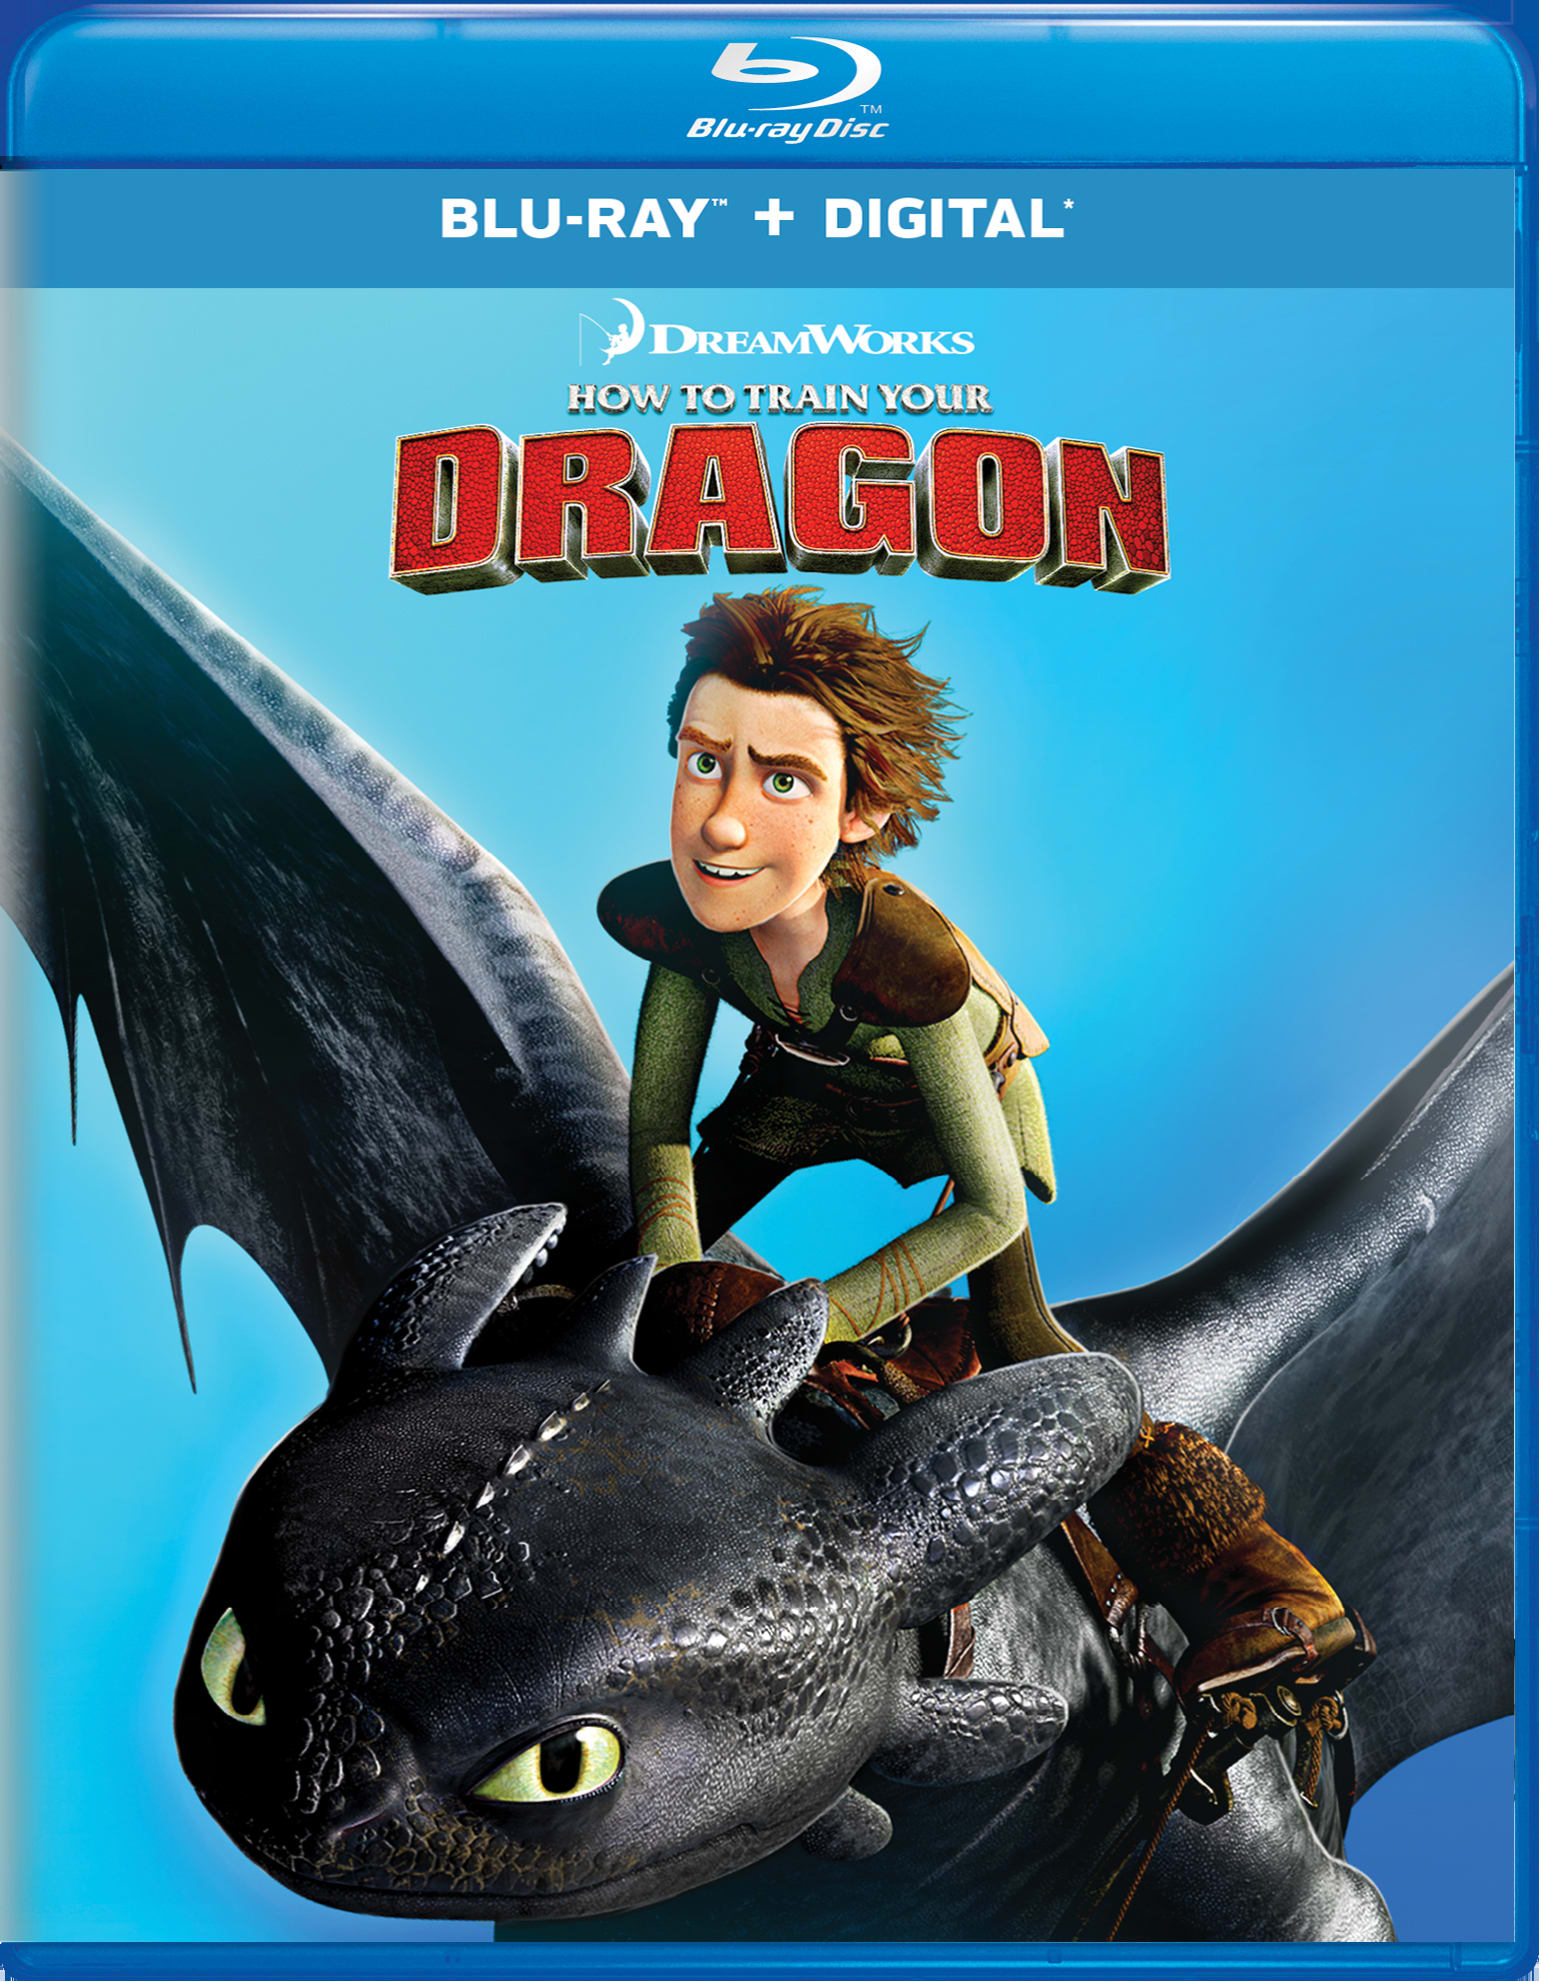 How to Train Your Dragon (Digital) [Blu-ray]